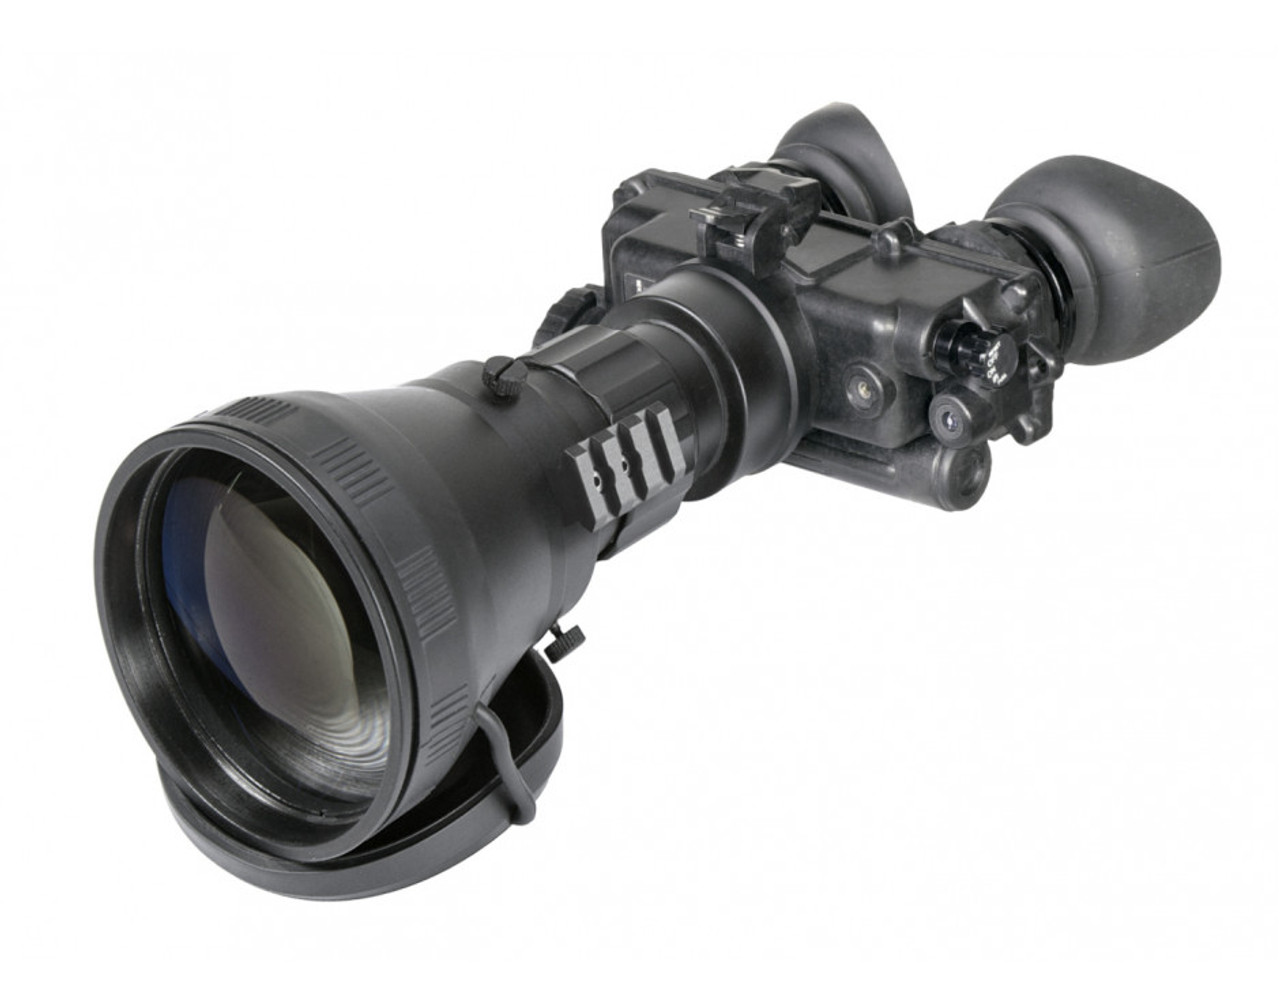 "AGM FoxBat-LE6 3NL1 Night Vision Bi-Ocular 5.6x Gen 3 ""Level 1"" with Sioux850 Long-Range Infrared Illuminator. Made in USA! (AGM FoxBat-LE6 3NL1)"